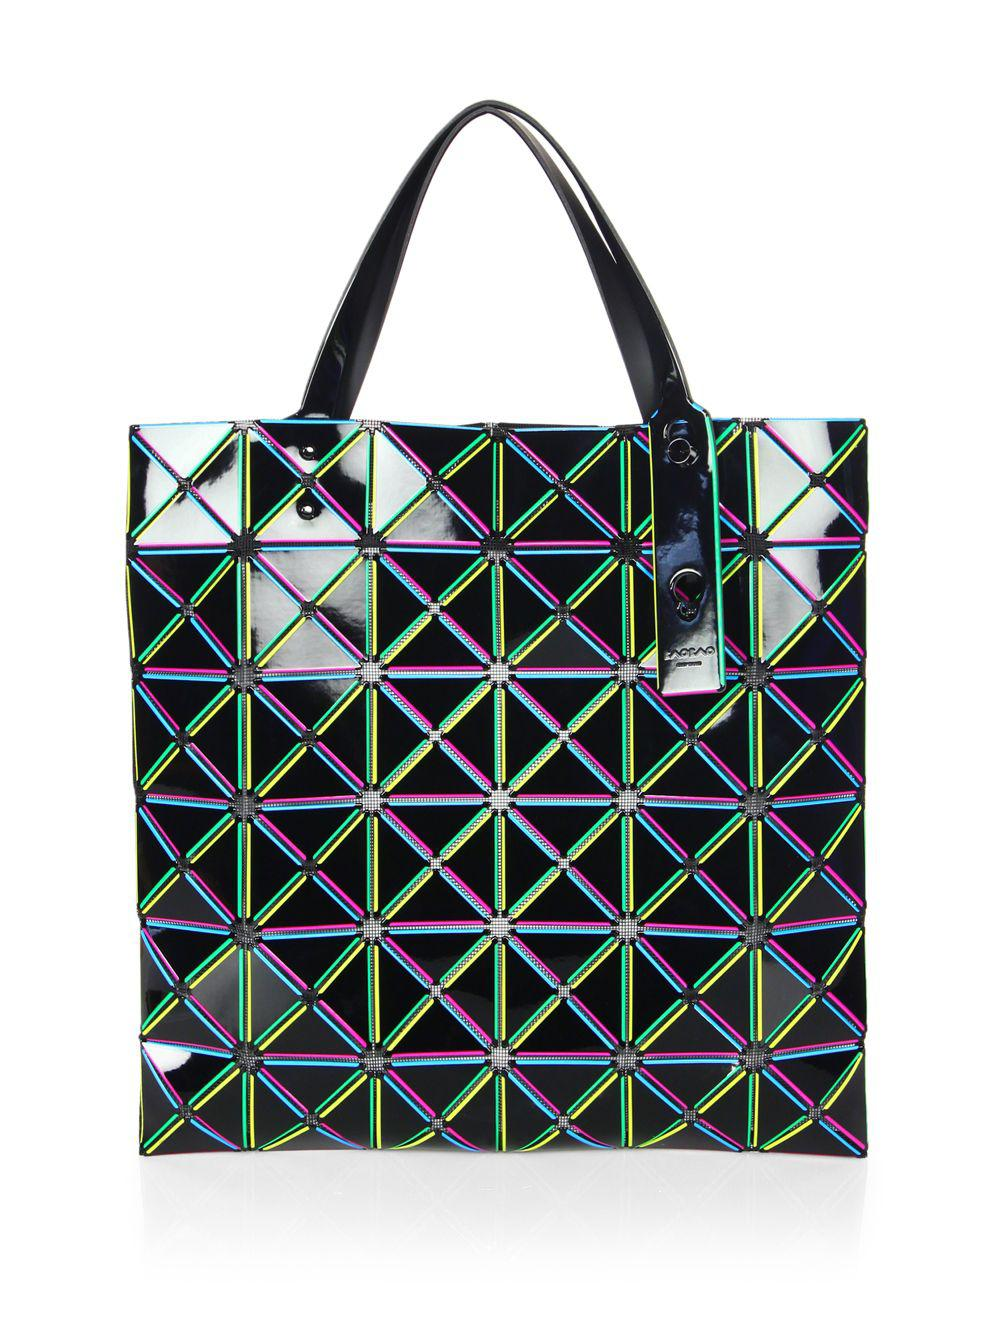 15a4d09e06 Bao Bao Issey Miyake Lucent Comet Tote in Black - Save 36% - Lyst